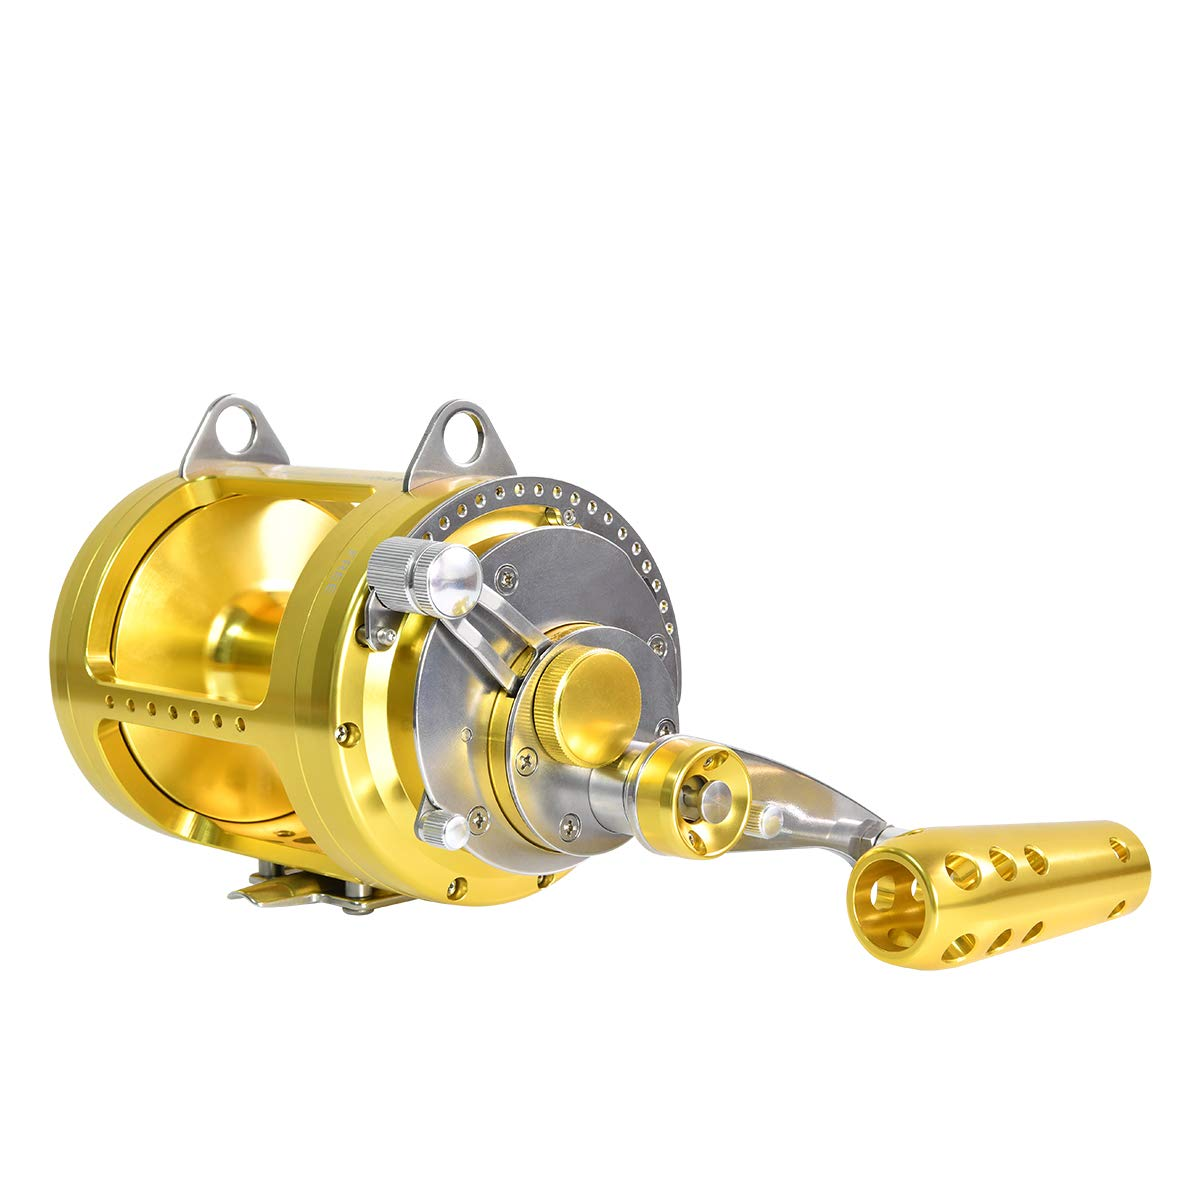 GOMEXUS Saltwater Trolling Reel 2 Speed Bluefin Yellowfin Tuna Game Reel 18W to 50W 50-140lbs Silky Smooth and Solid Powerful 10 Year Test